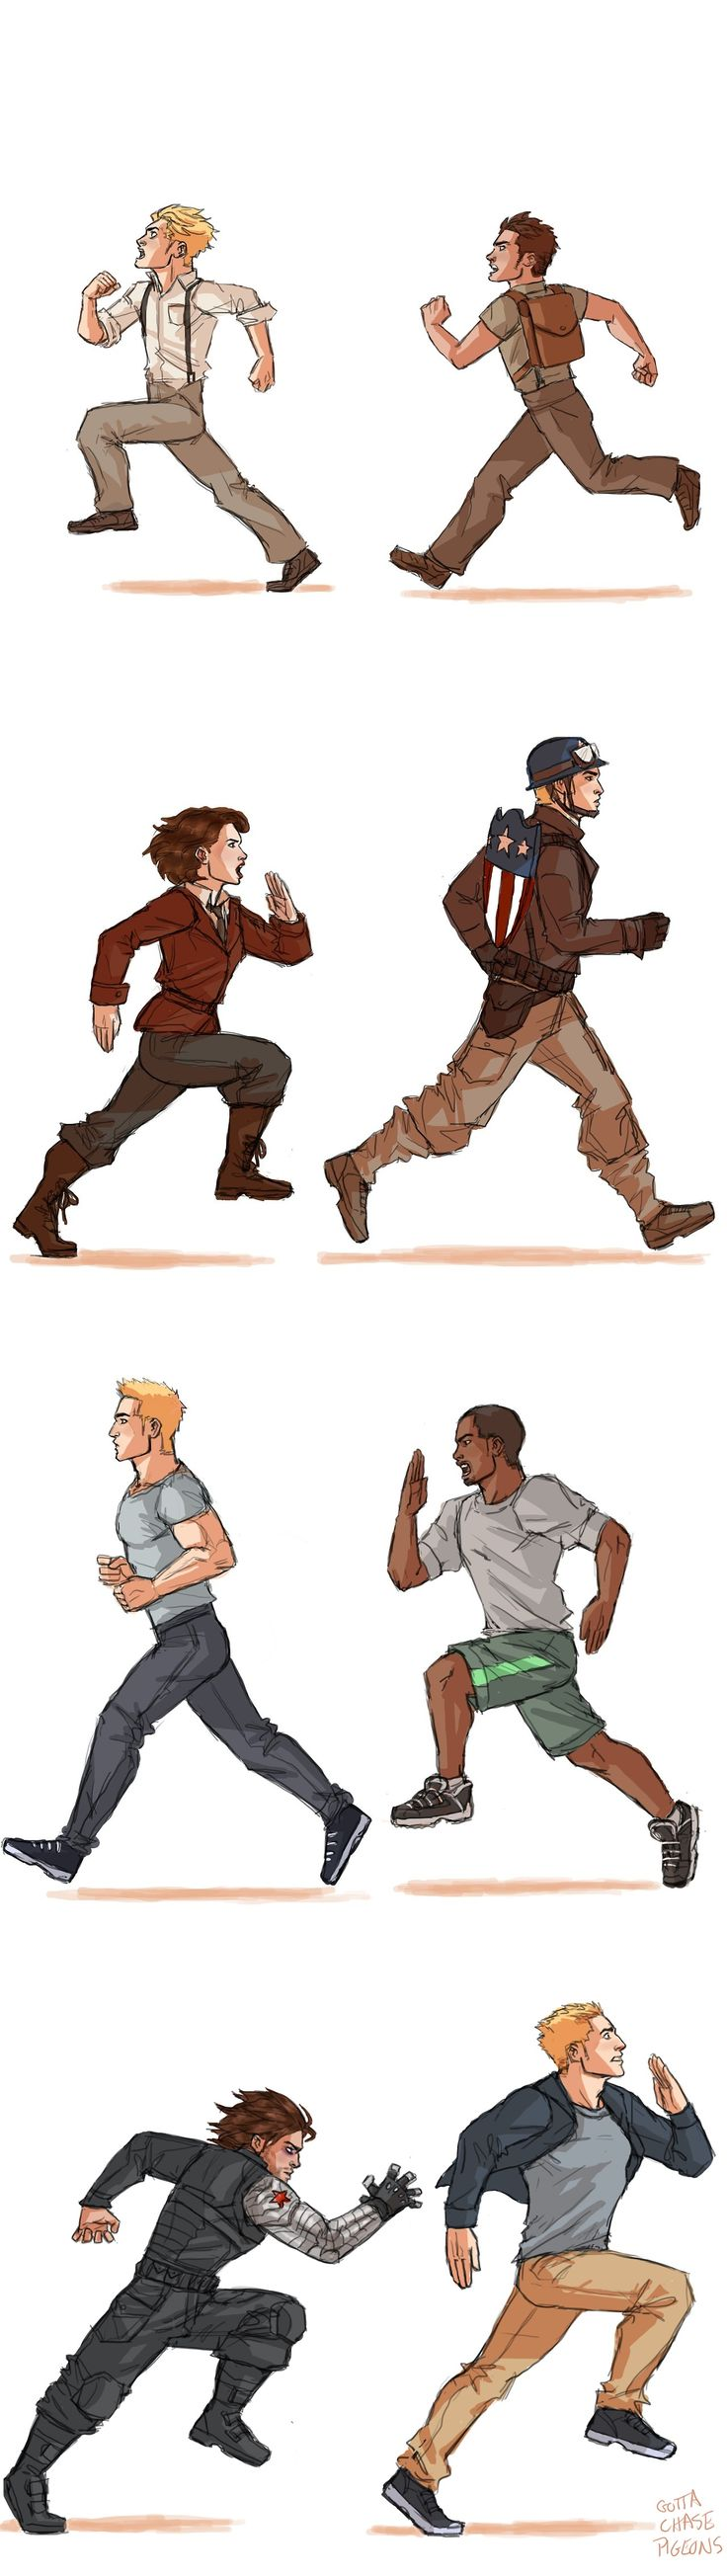 """Steve Rogers has gotten used to being chased by testy brunettes. Bucky Barnes: """"STEVE NO"""". Peggy Carter: """"The plane is the other way Steve"""". Sam Wilson: """"I will kill your star spangled ass Rogers"""". The Winter Soldier: *angry soviet noises*<<<angry soviet noises!"""